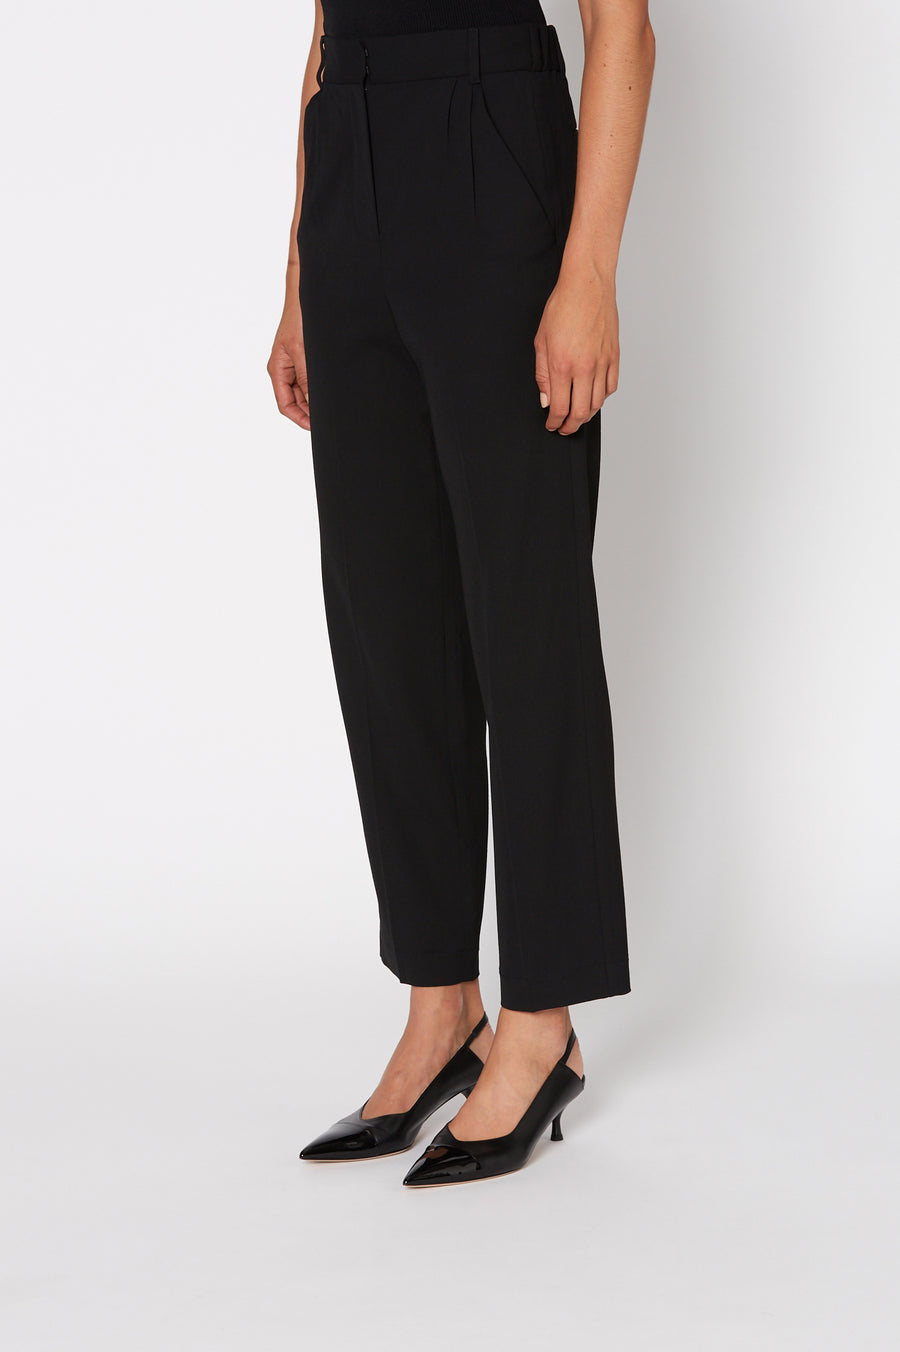 Tailored Soft Trouser, high waist tailored pant, falls just above the ankle, waistband and pressed creases through the slim legs, Color black